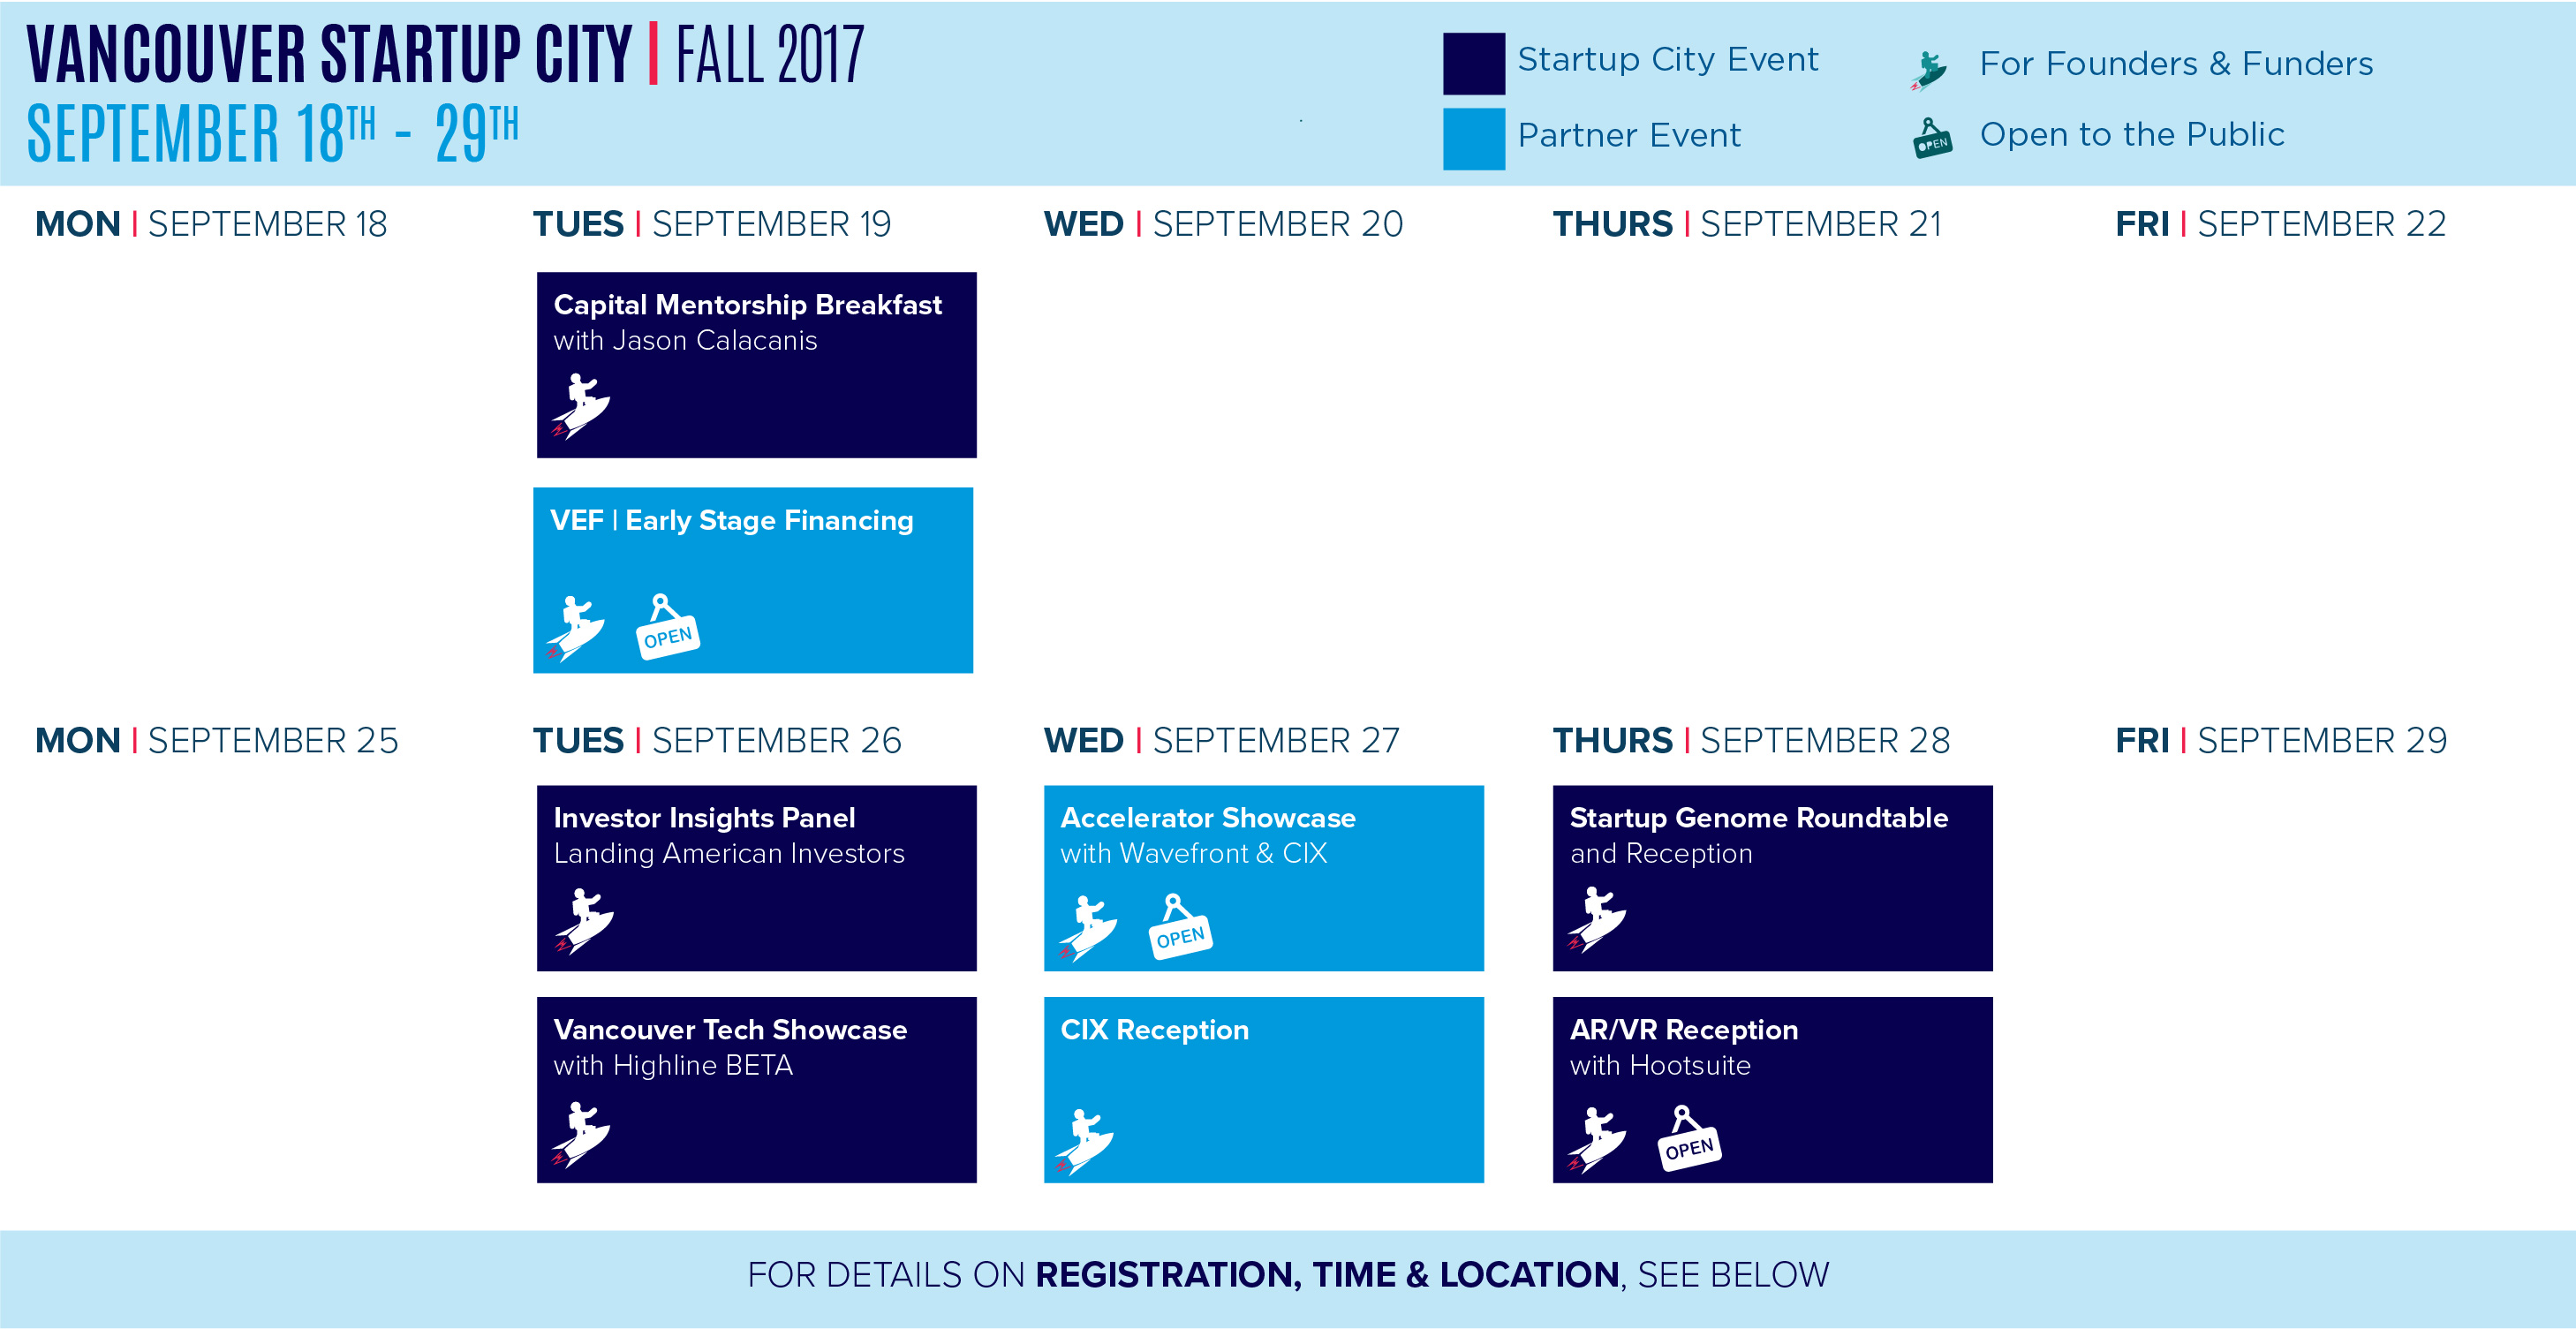 Vancouver Startup City Fall 2017 Calendar of Events